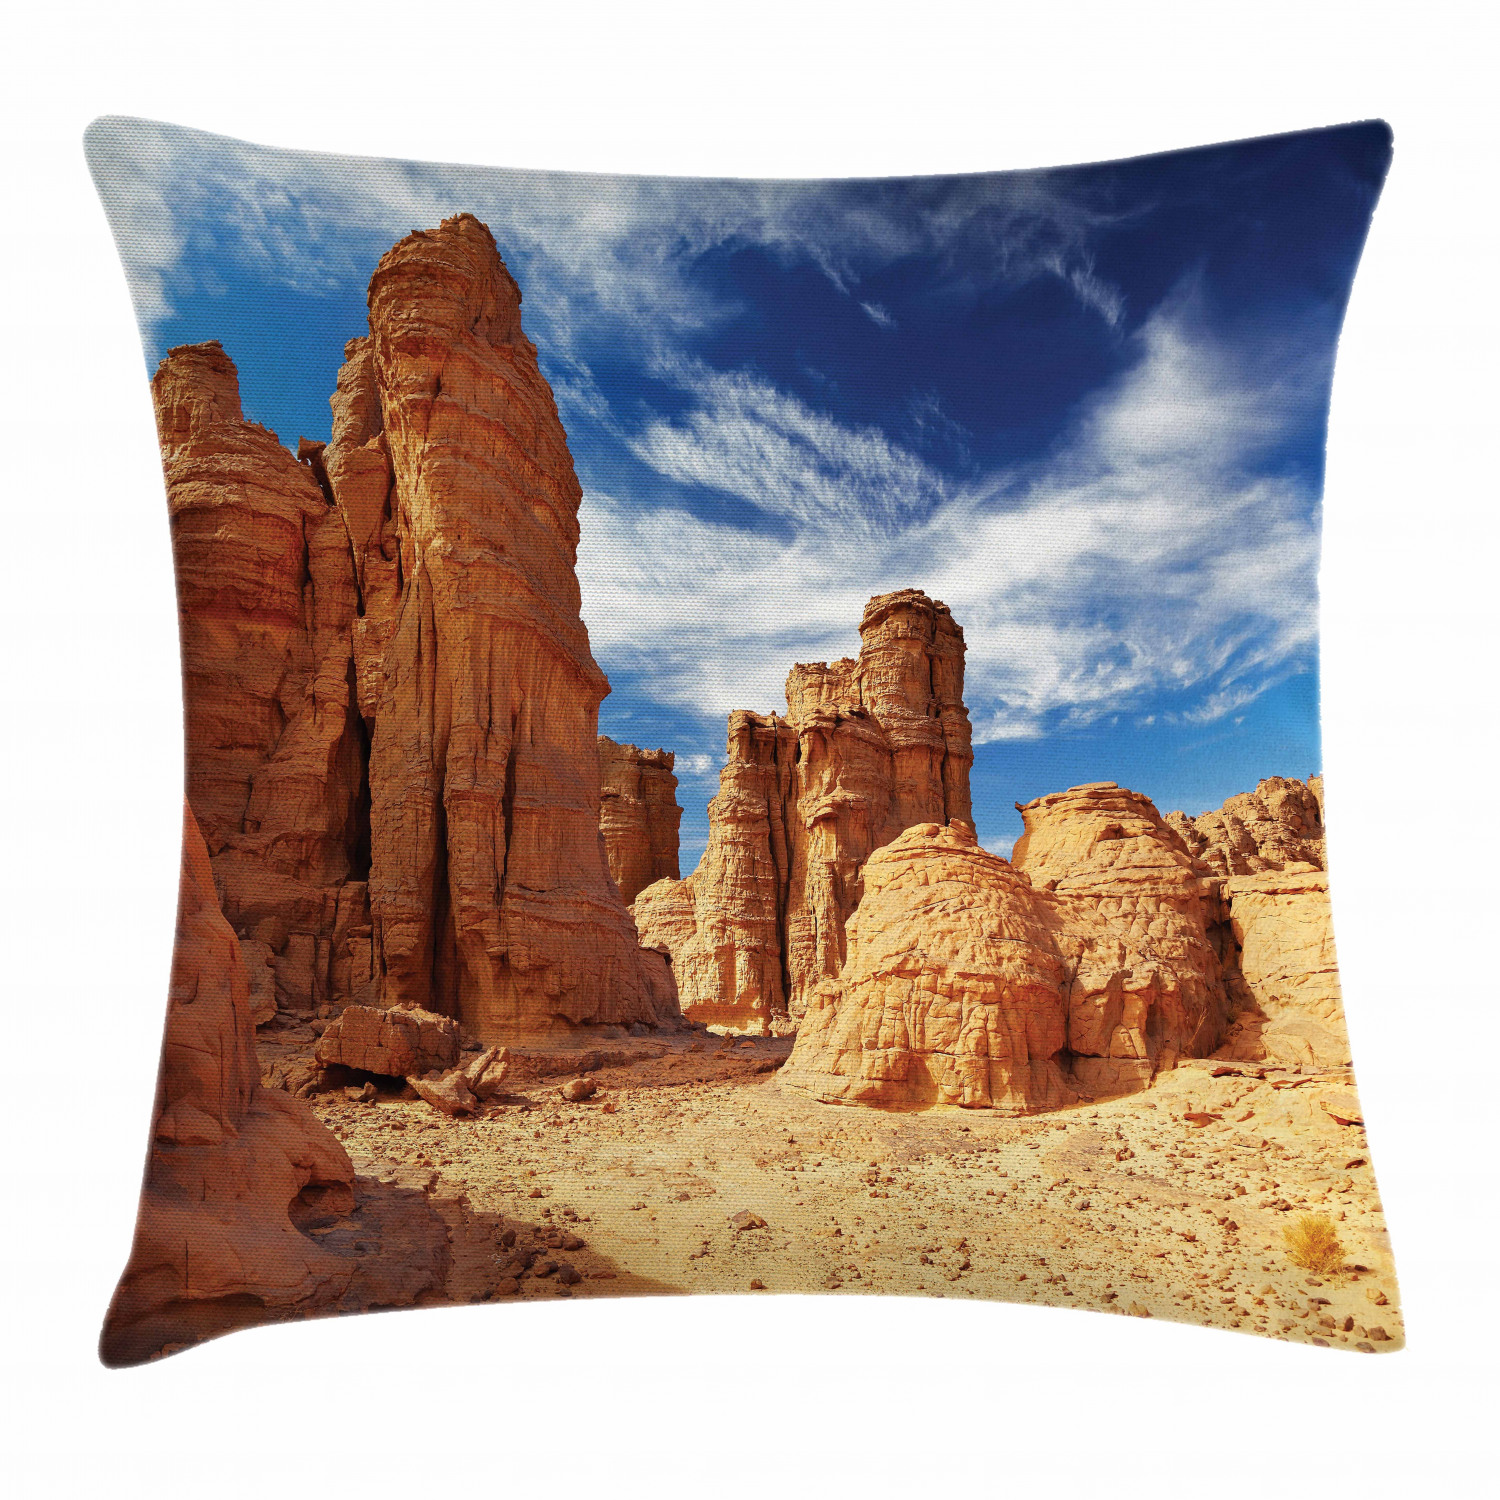 Desert Throw Pillow Cushion Cover Bizarre Sandstone Cliffs In Sahara Desert Tassili N Ajjer Algeria Decorative Square Accent Pillow Case 24 X 24 Inches Navy Blue Mustard Orange By Ambesonne Walmart Com